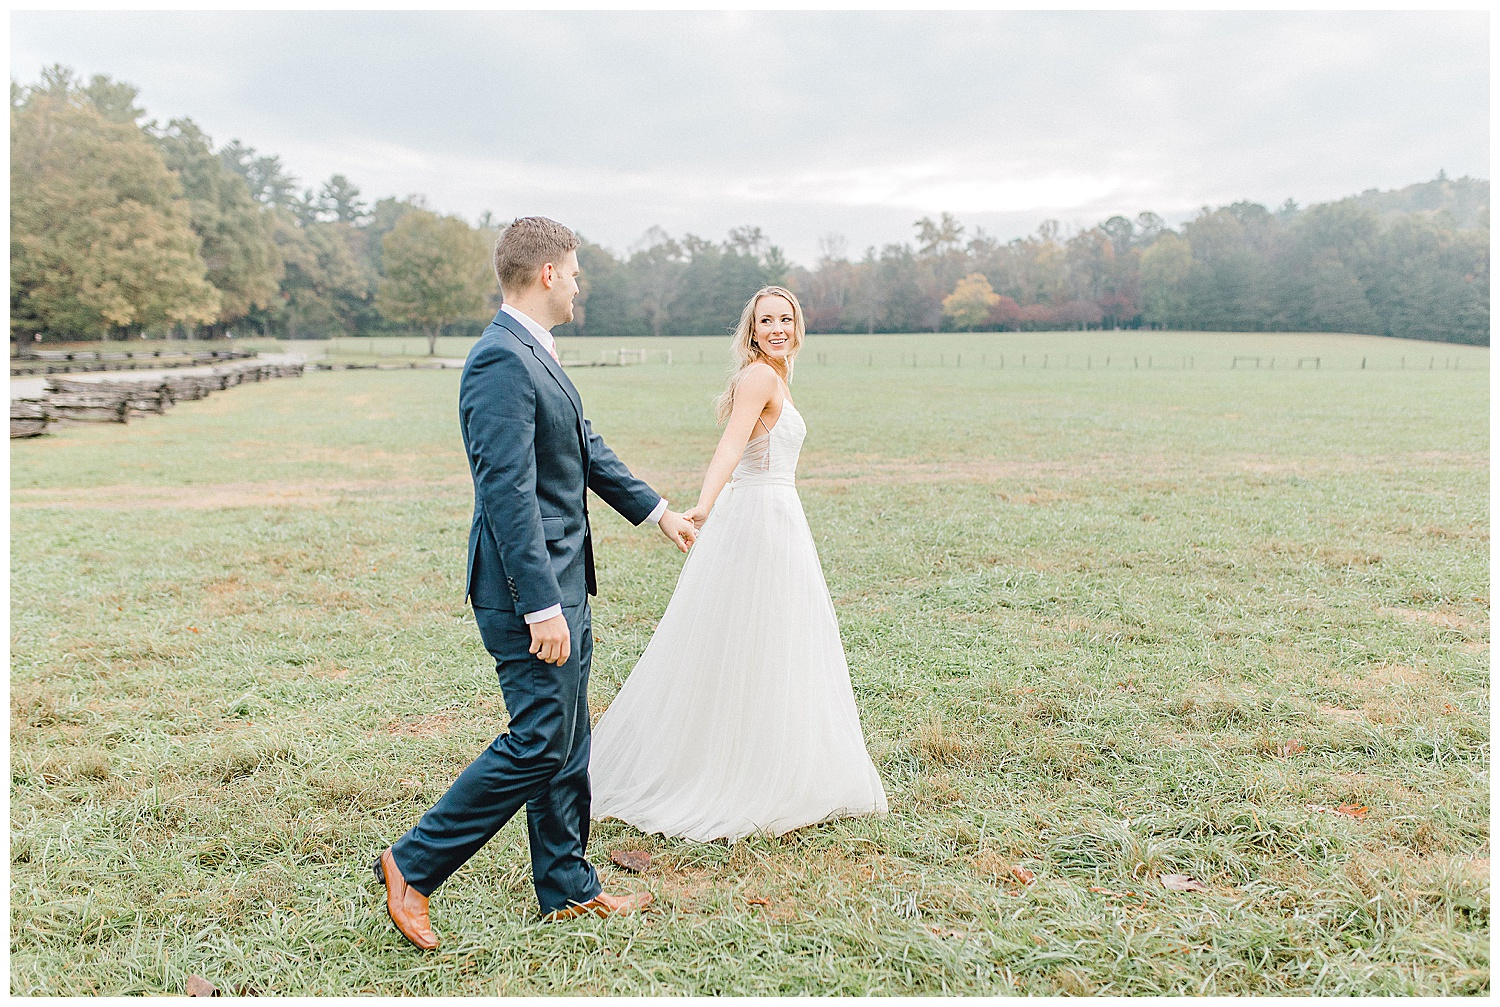 Emma Rose Company recently got to travel all the way to Nashville to photograph the most beautiful post-wedding bride and groom portraits in the Great Smoky Mountains with a gorgeous couple! Nashville wedding inspiration at it's finest._0028.jpg